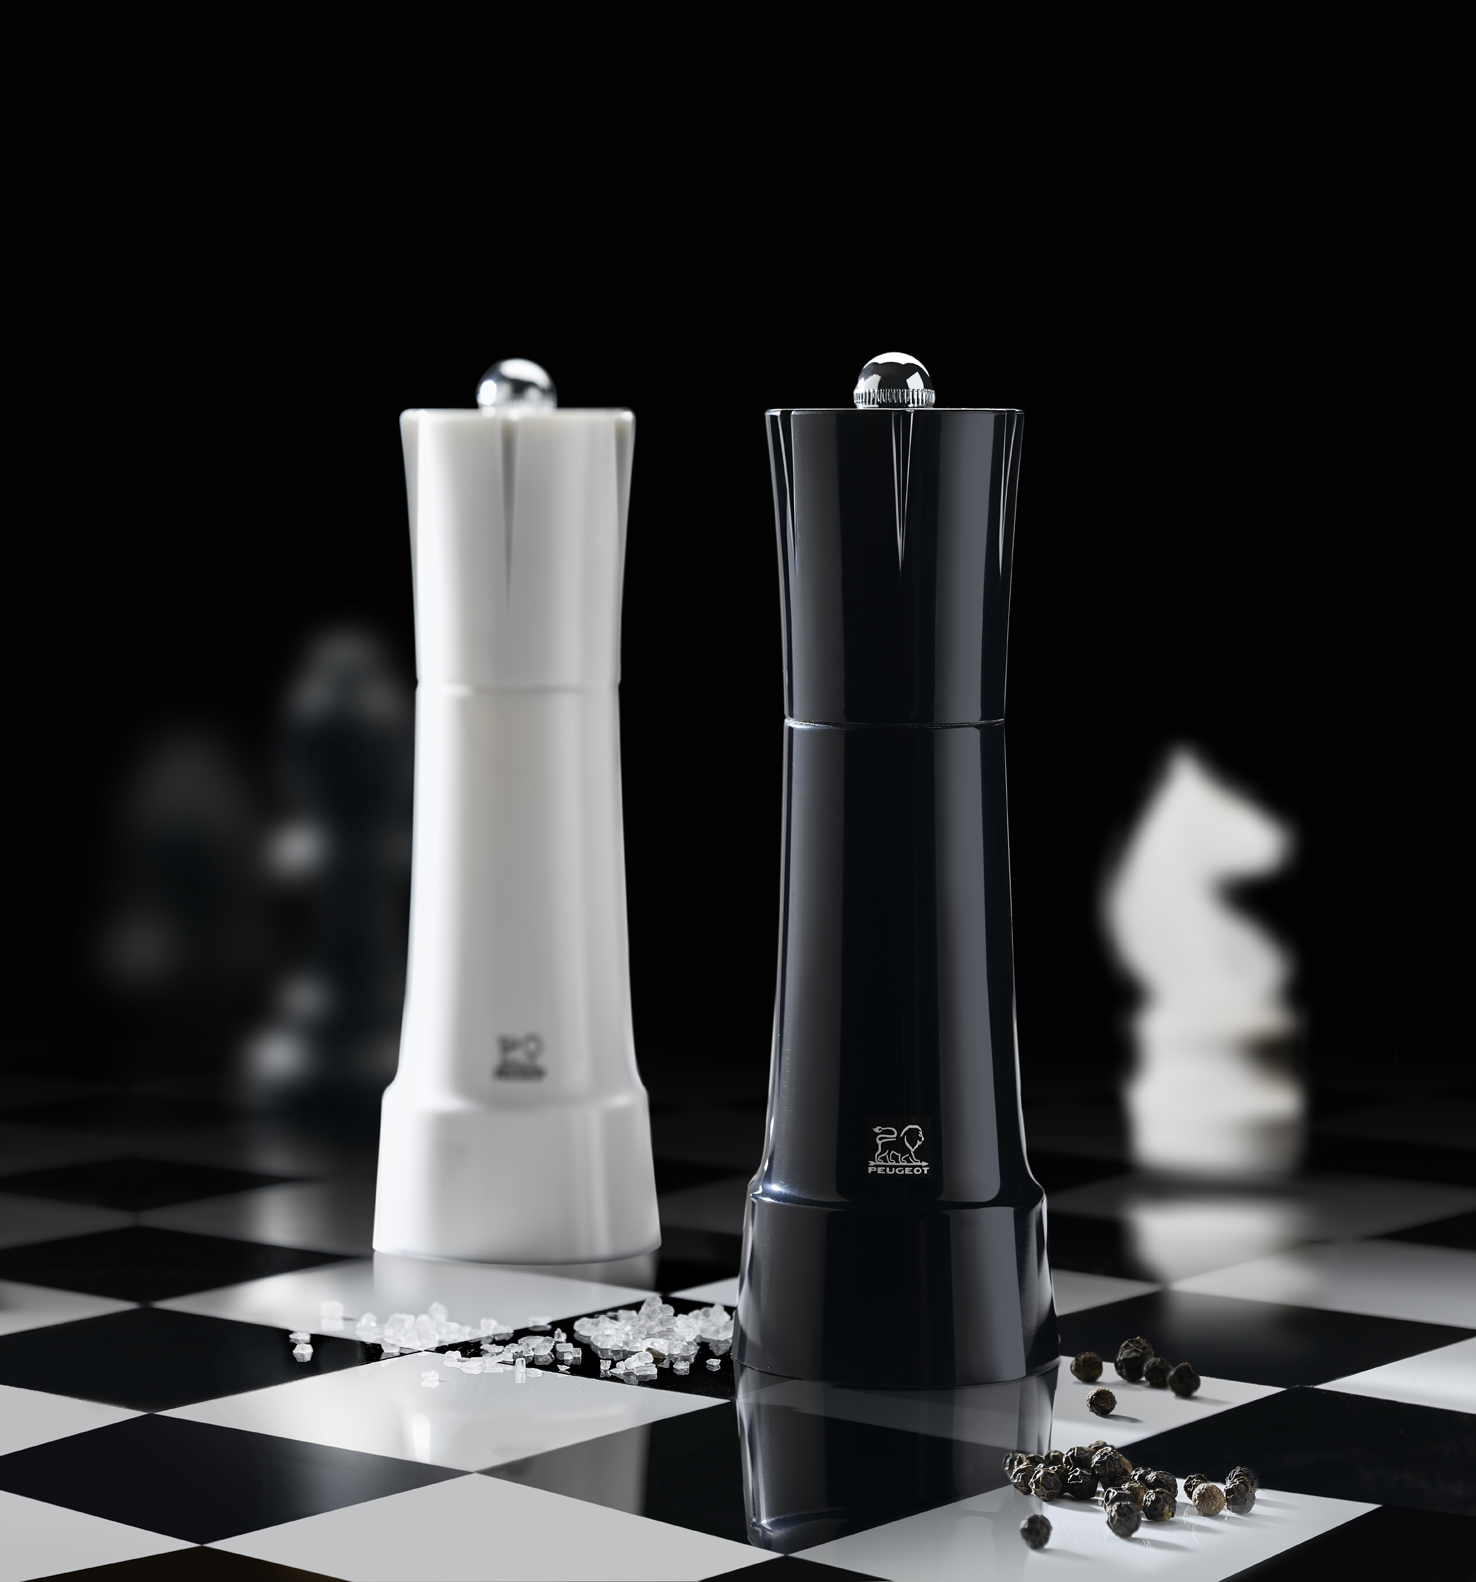 peugeot salt pepper mills chess 2015 by nicolas brouillac at. Black Bedroom Furniture Sets. Home Design Ideas